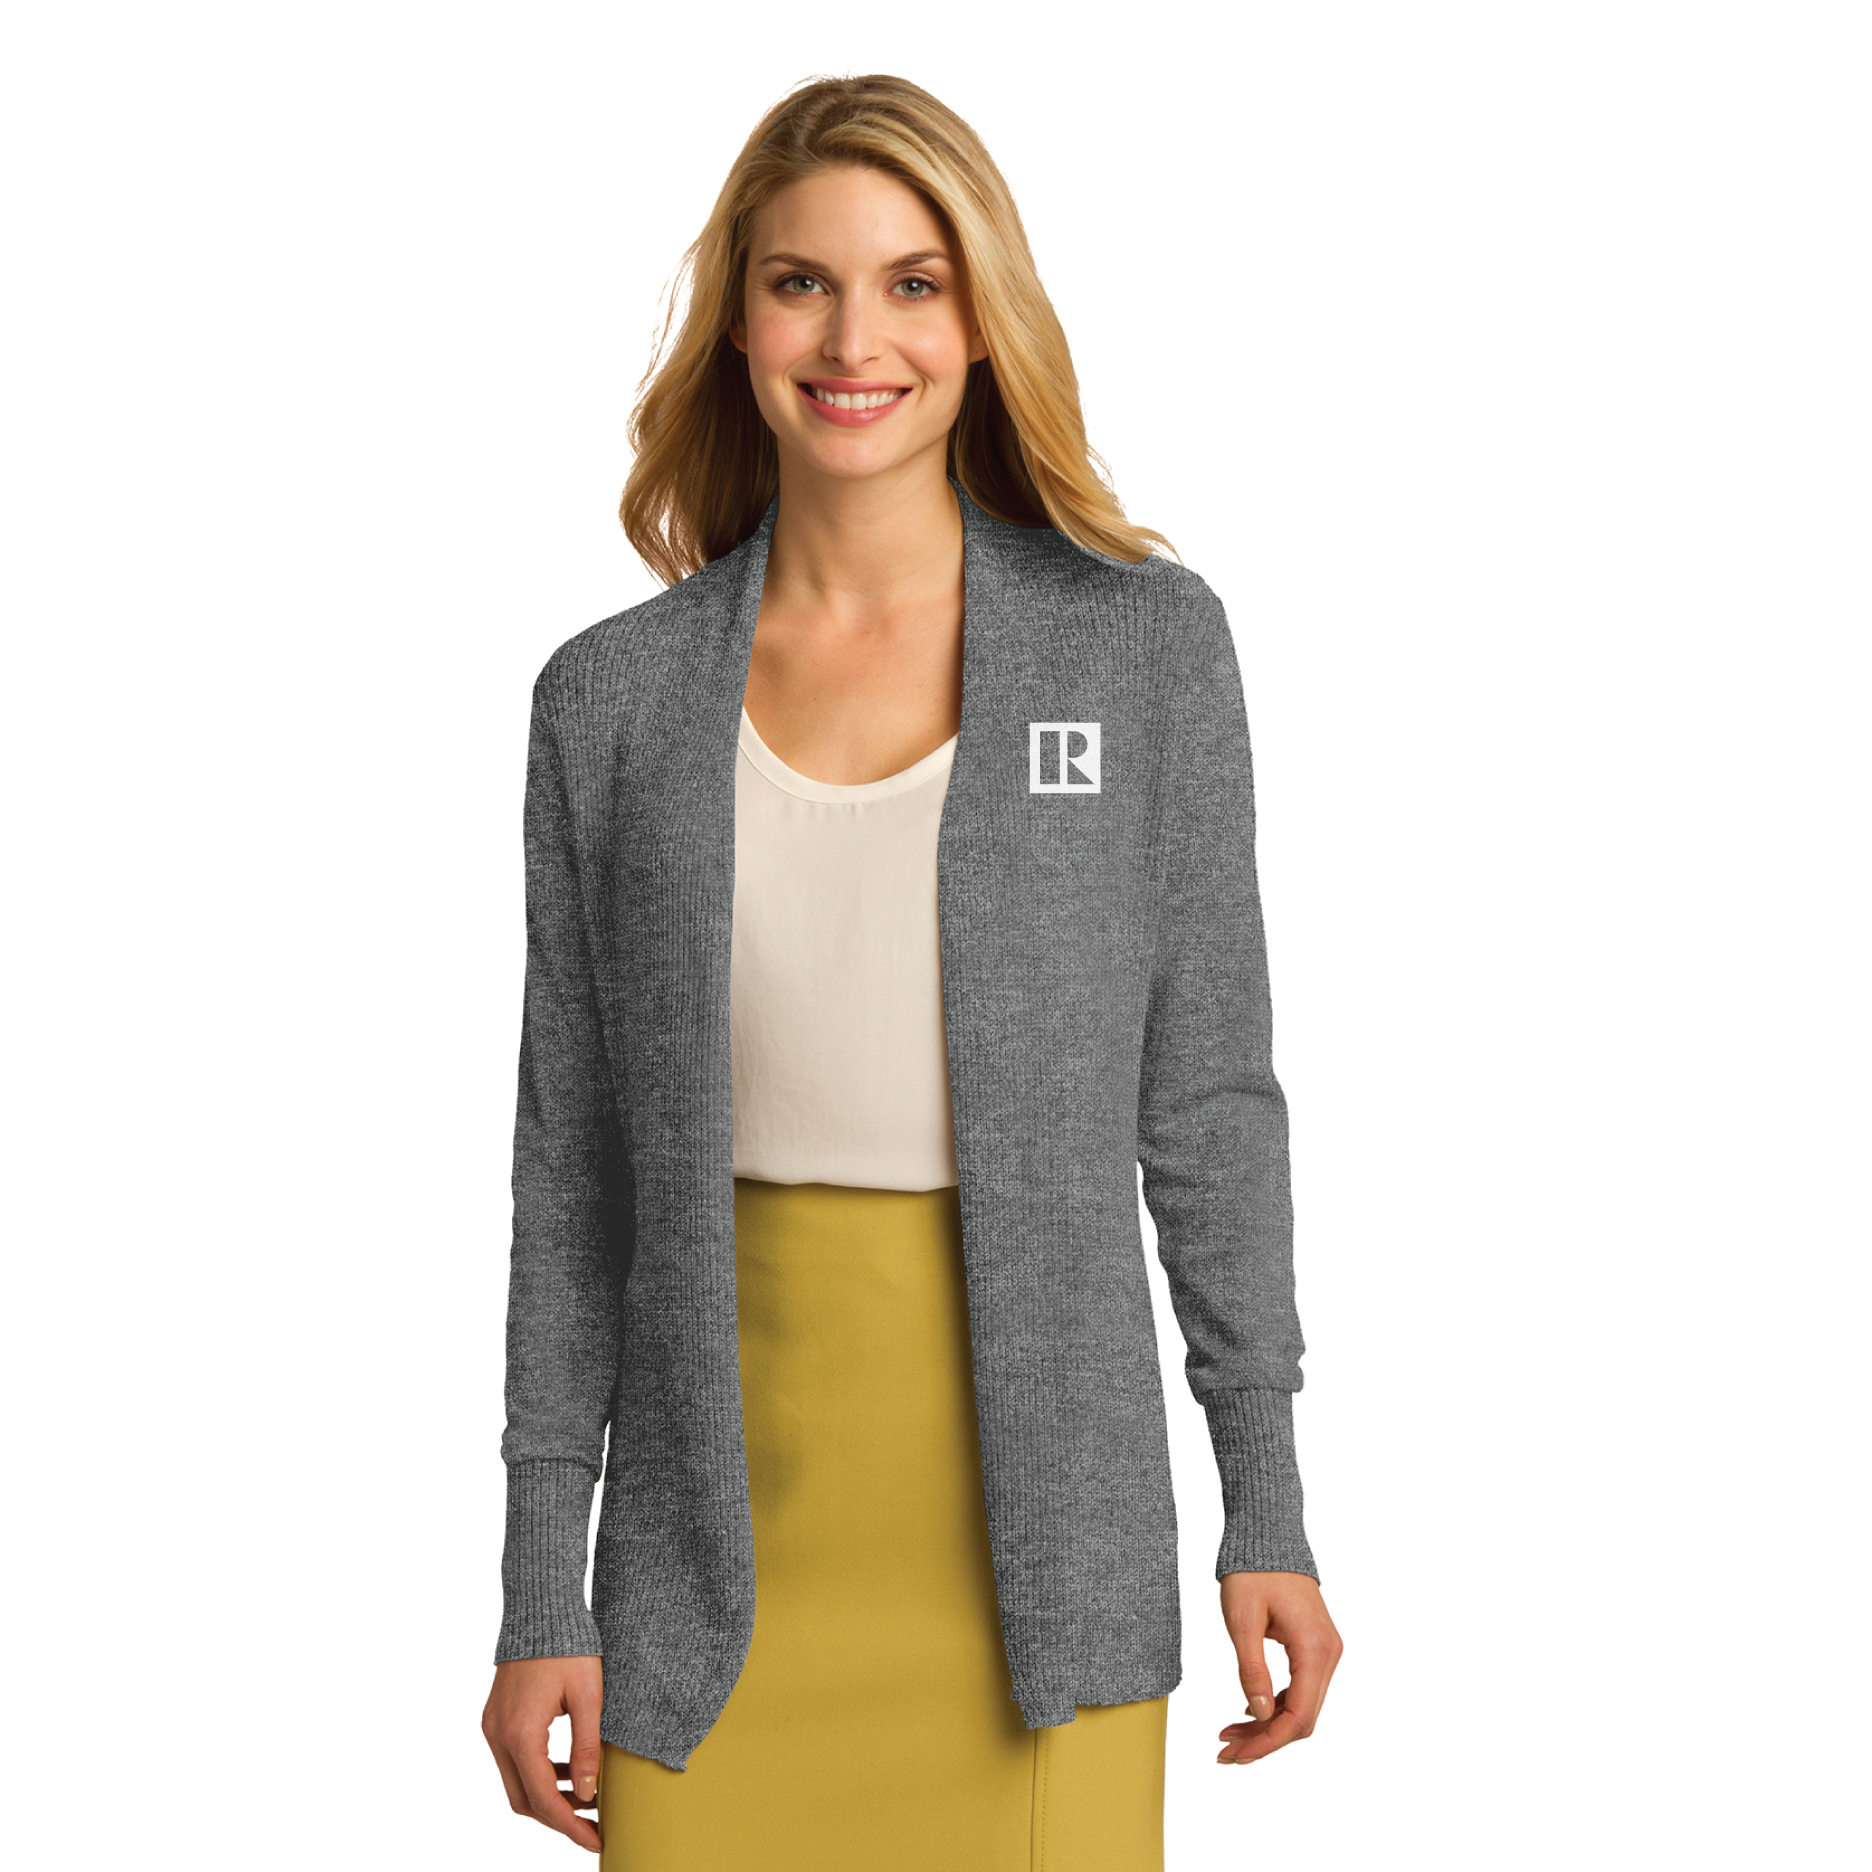 REALTOR® Ladies Open Front Cardigan Sweater (RCL4080)